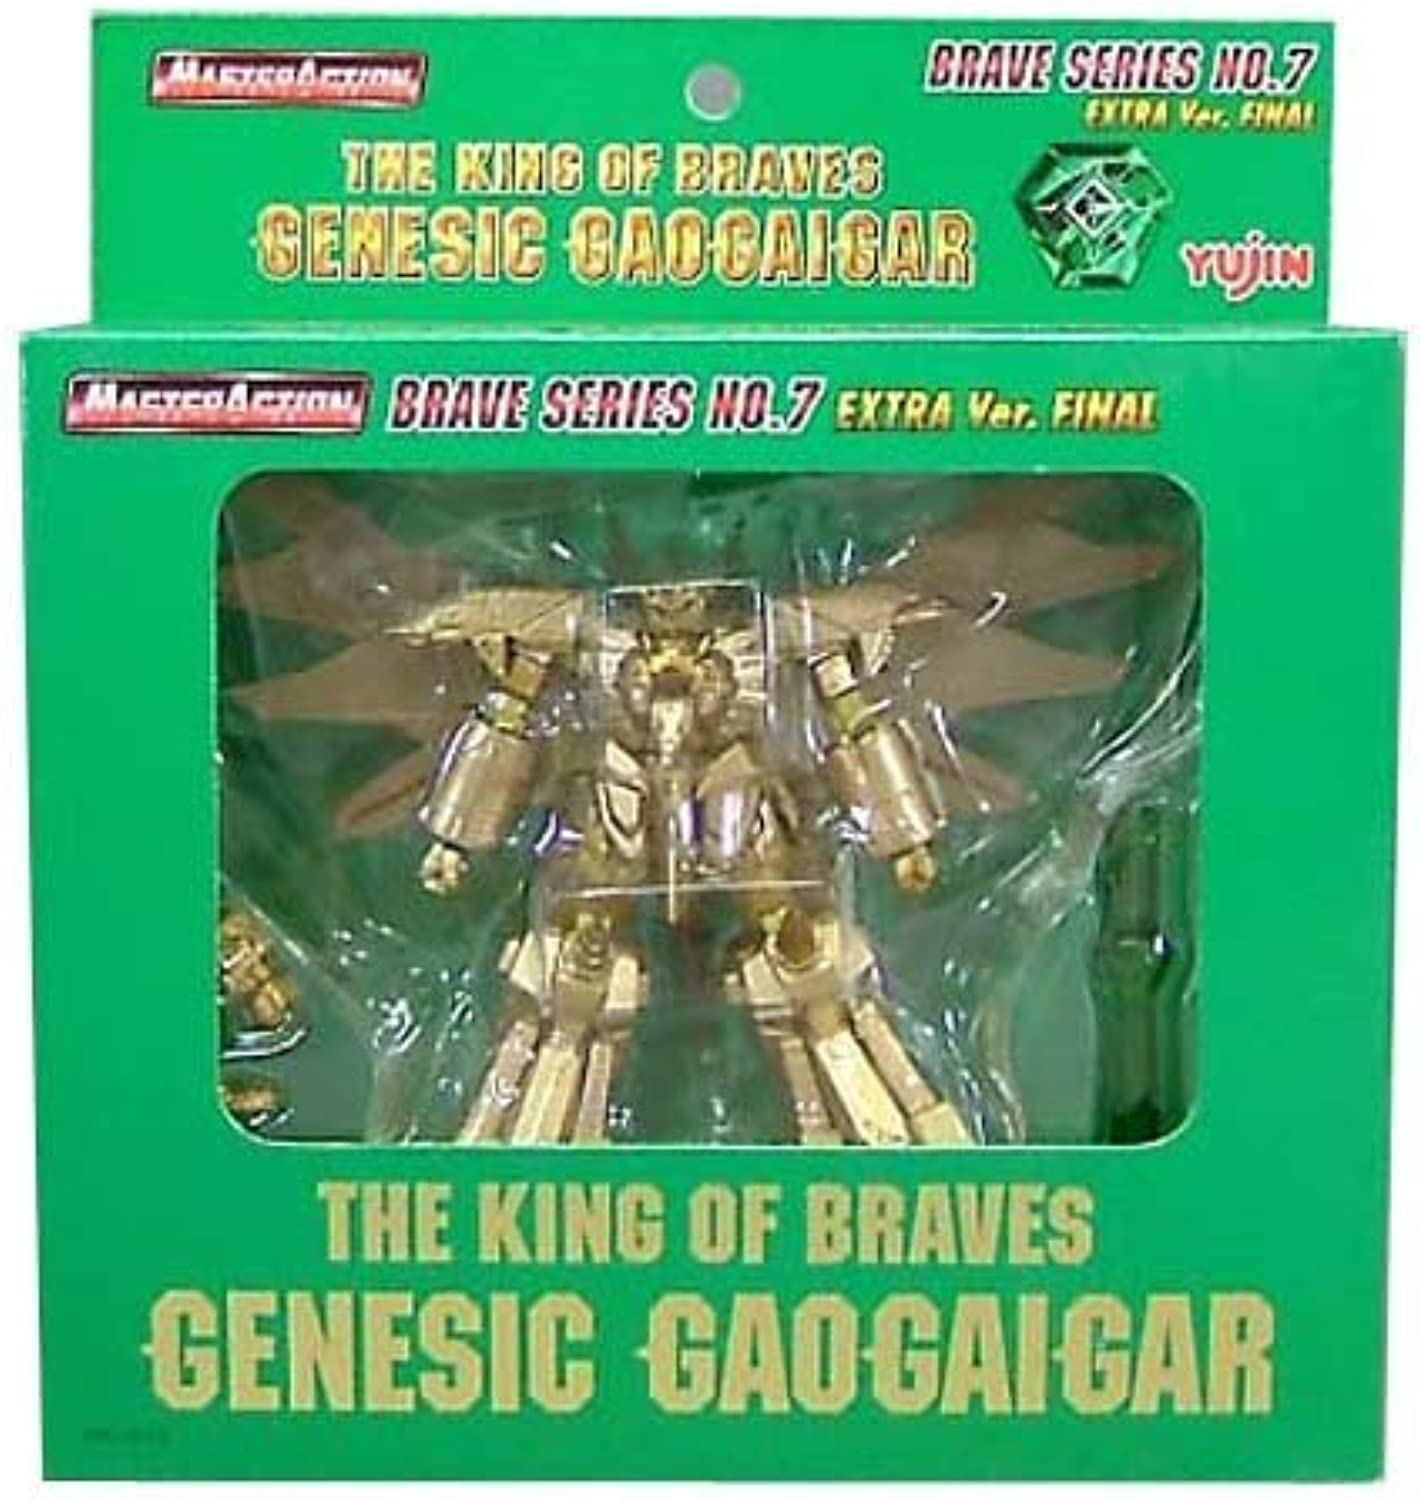 MASTERACTION THE KING OF BRAVES Genesic Gaogaigar BRAVE SERIES No.7 EXTRA Ver. FINAL (japan import)